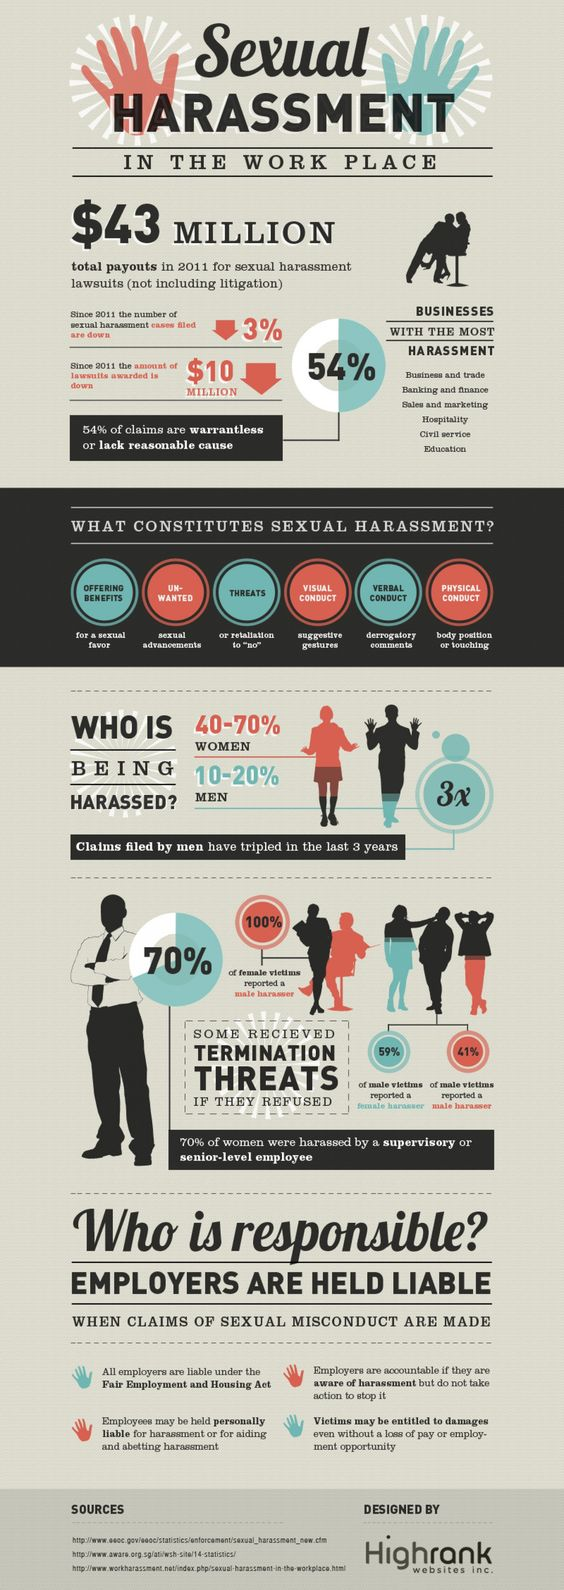 sexual harassment in the workplace infographic infographic sexual harassment in the workplace infographic